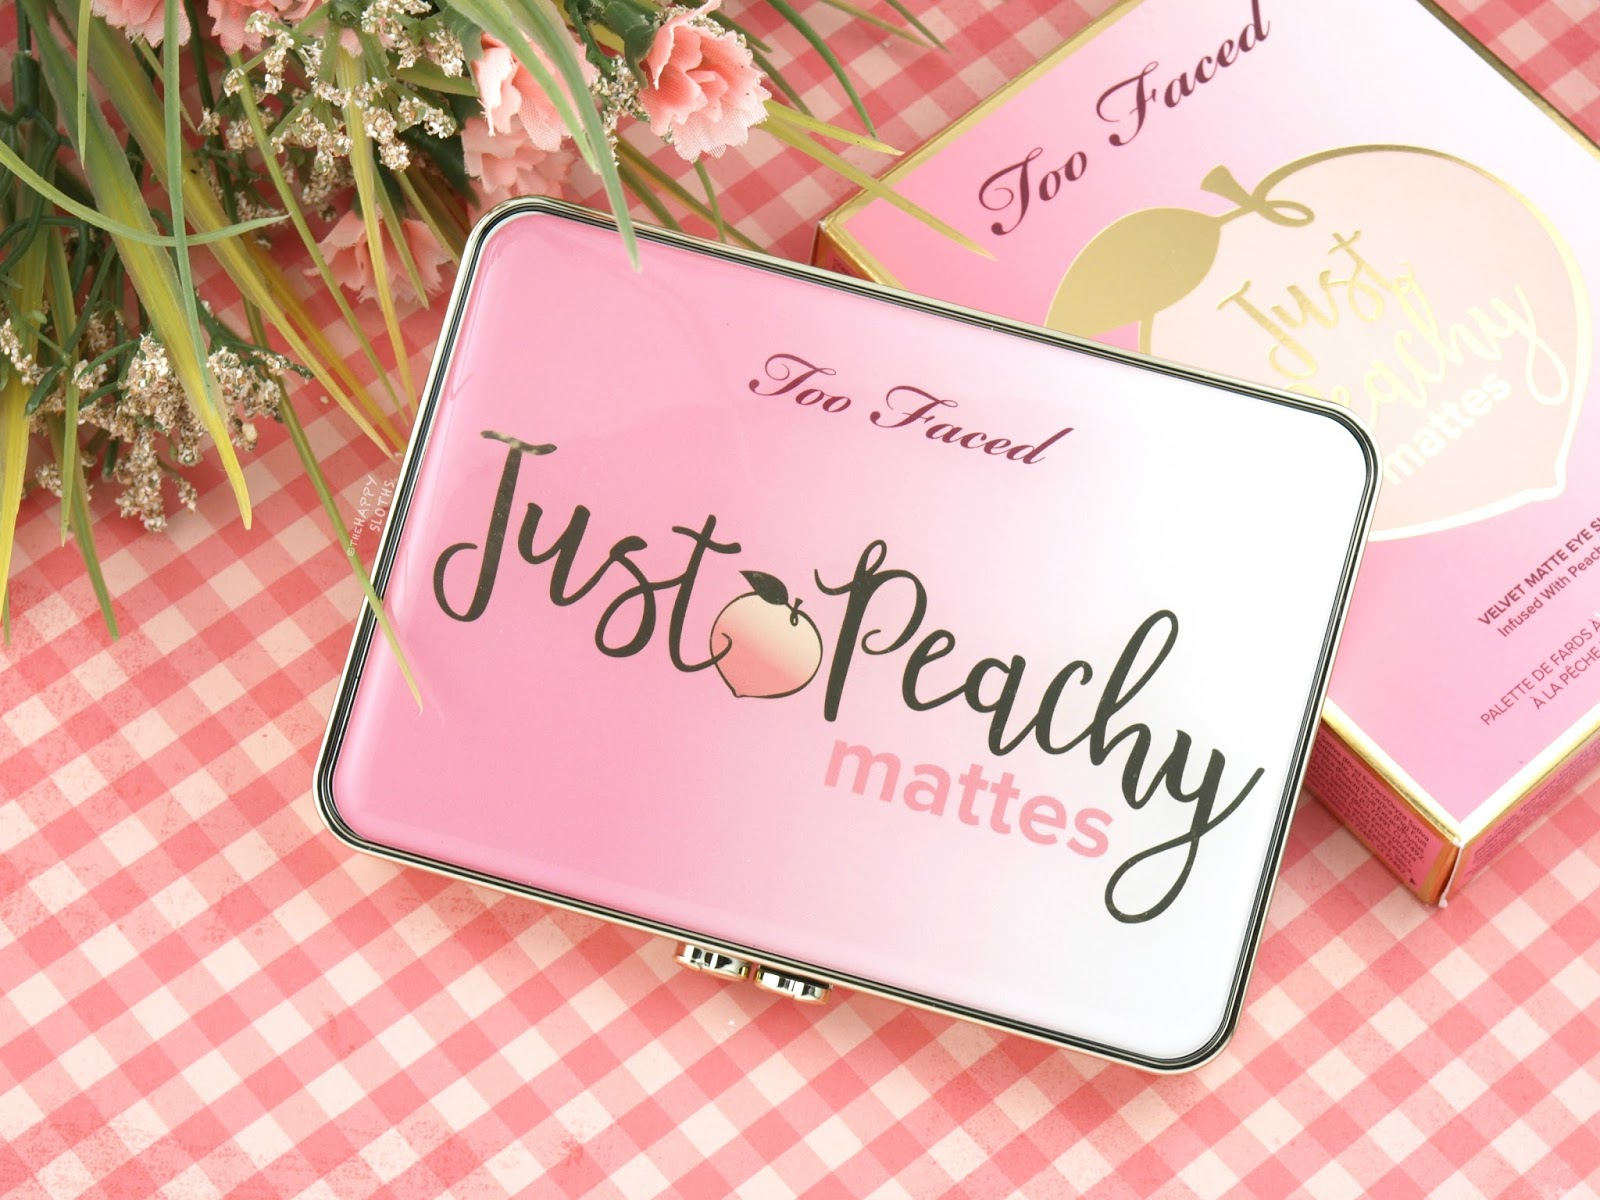 Too Faced Peaches & Cream Collection | Just Peachy Mattes Eyeshadow Palette: Review and Swatches